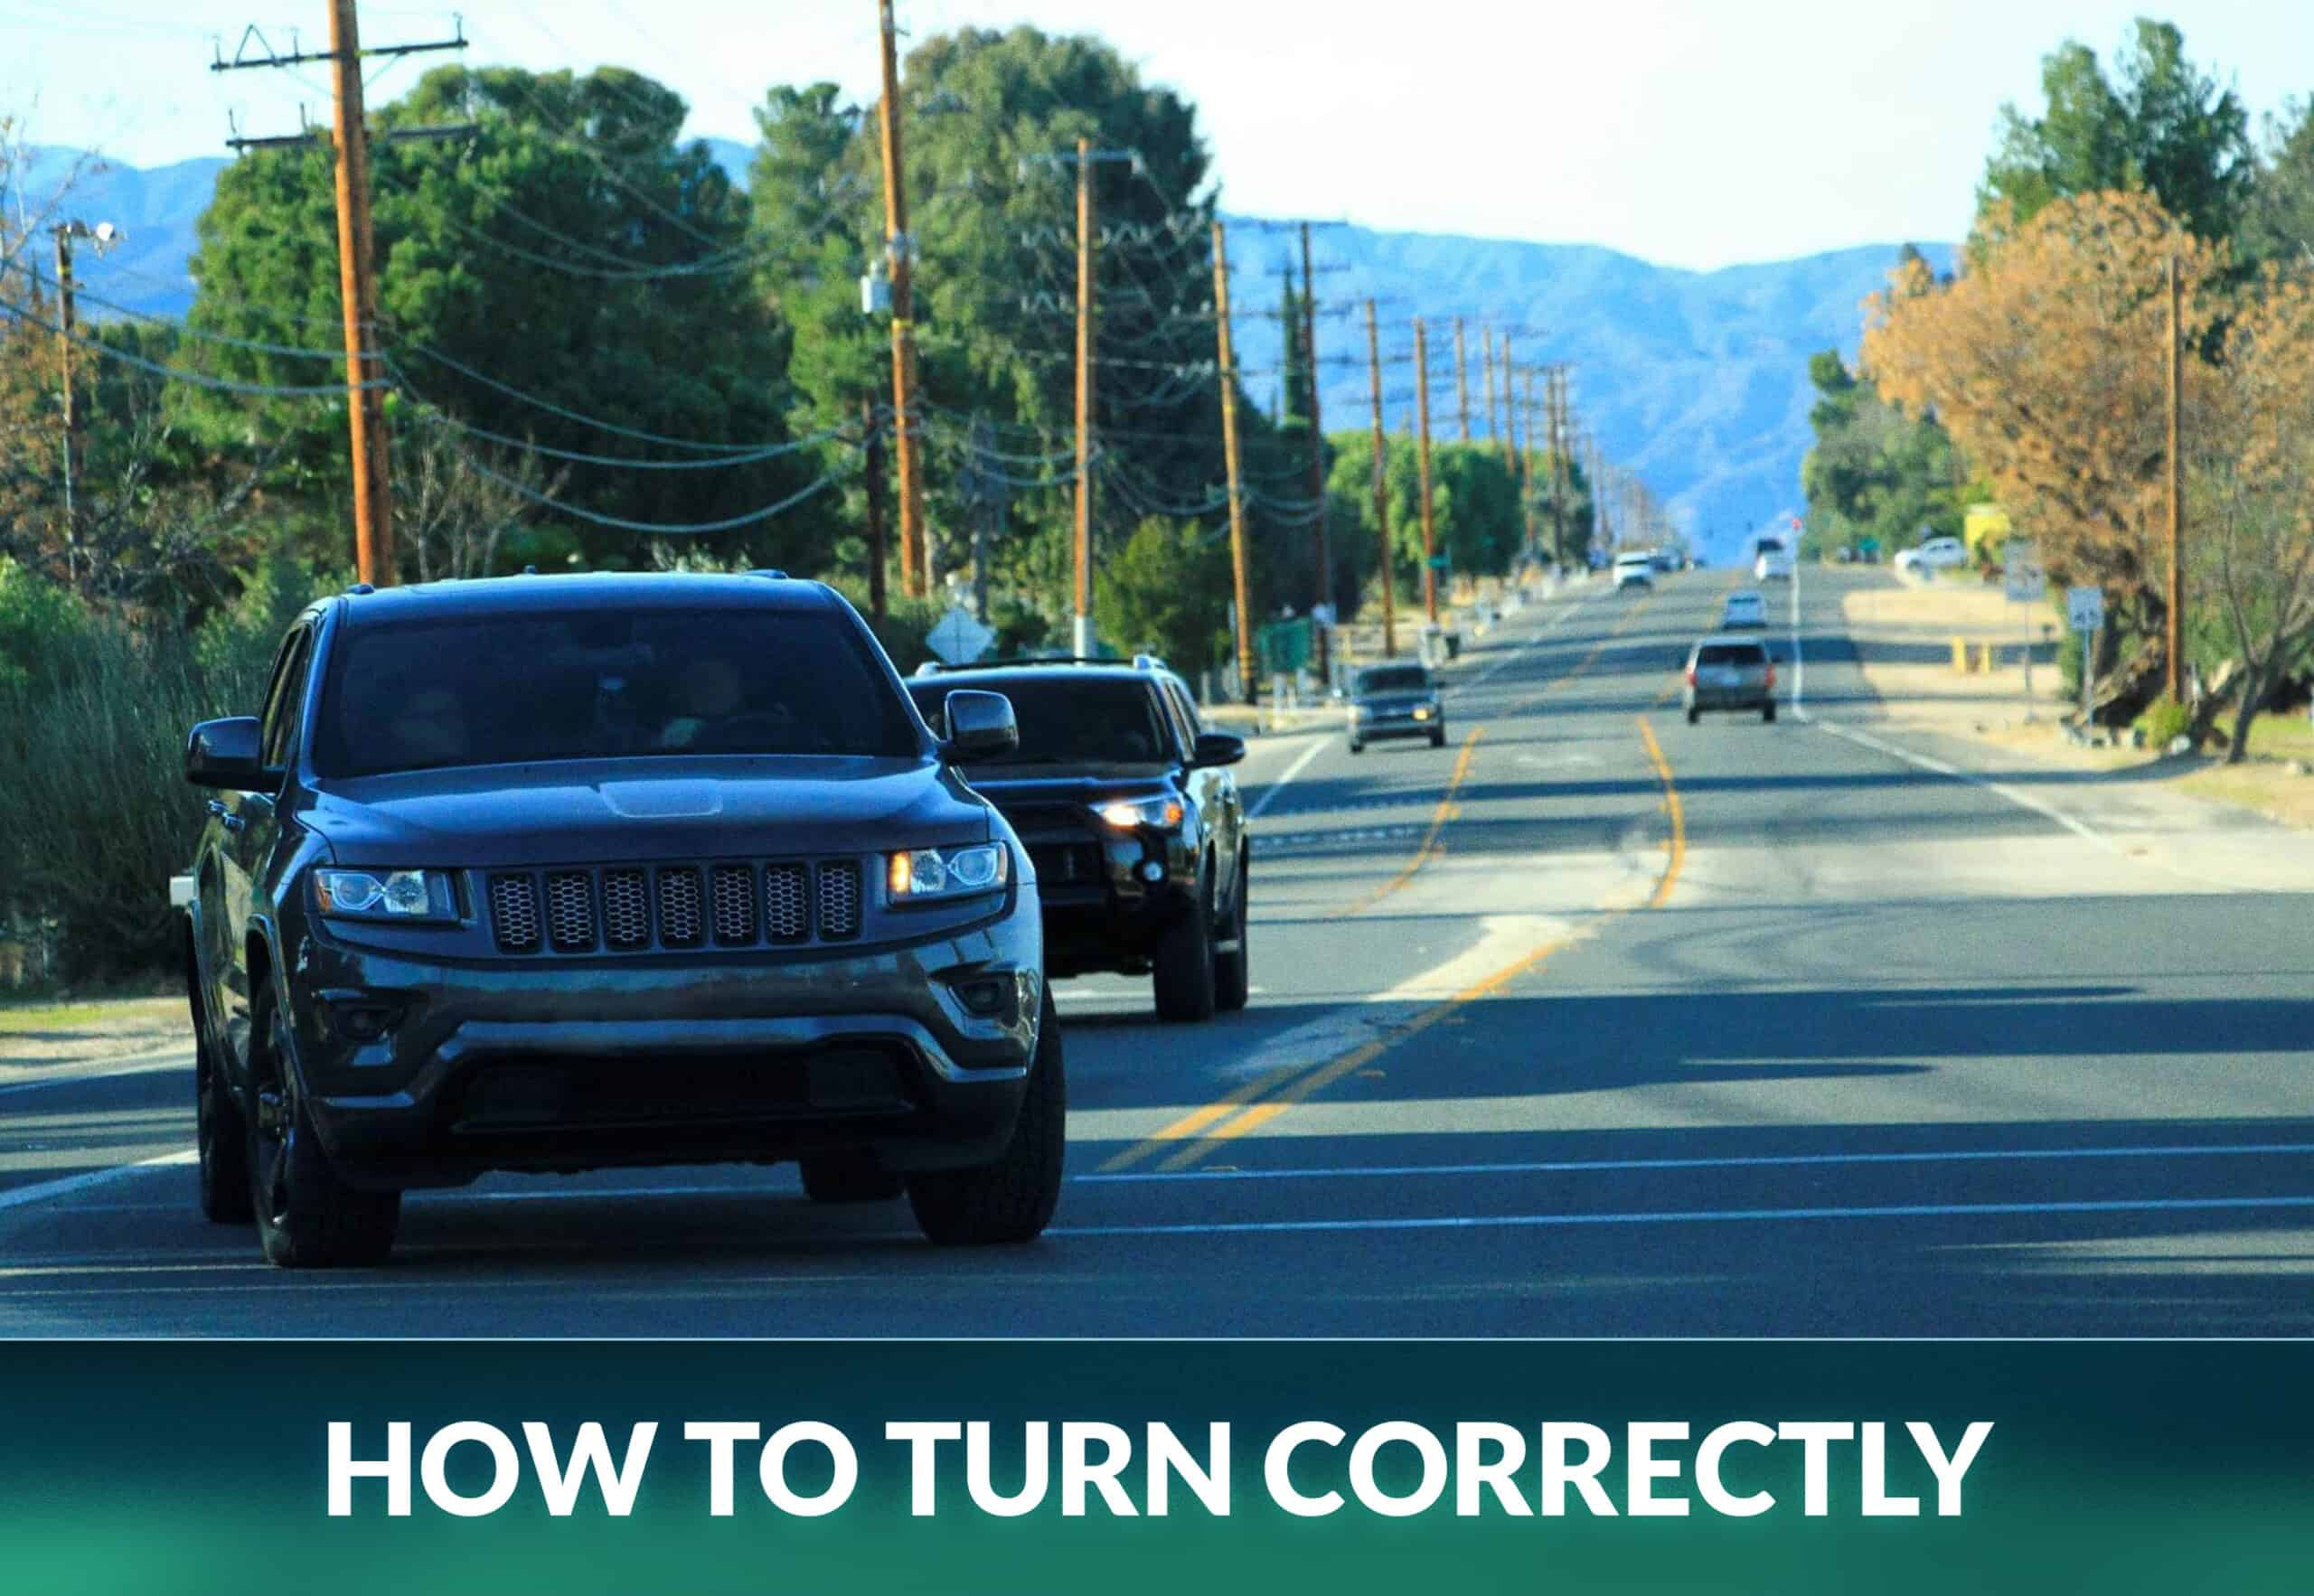 HOW TO TURN CORRECTLY